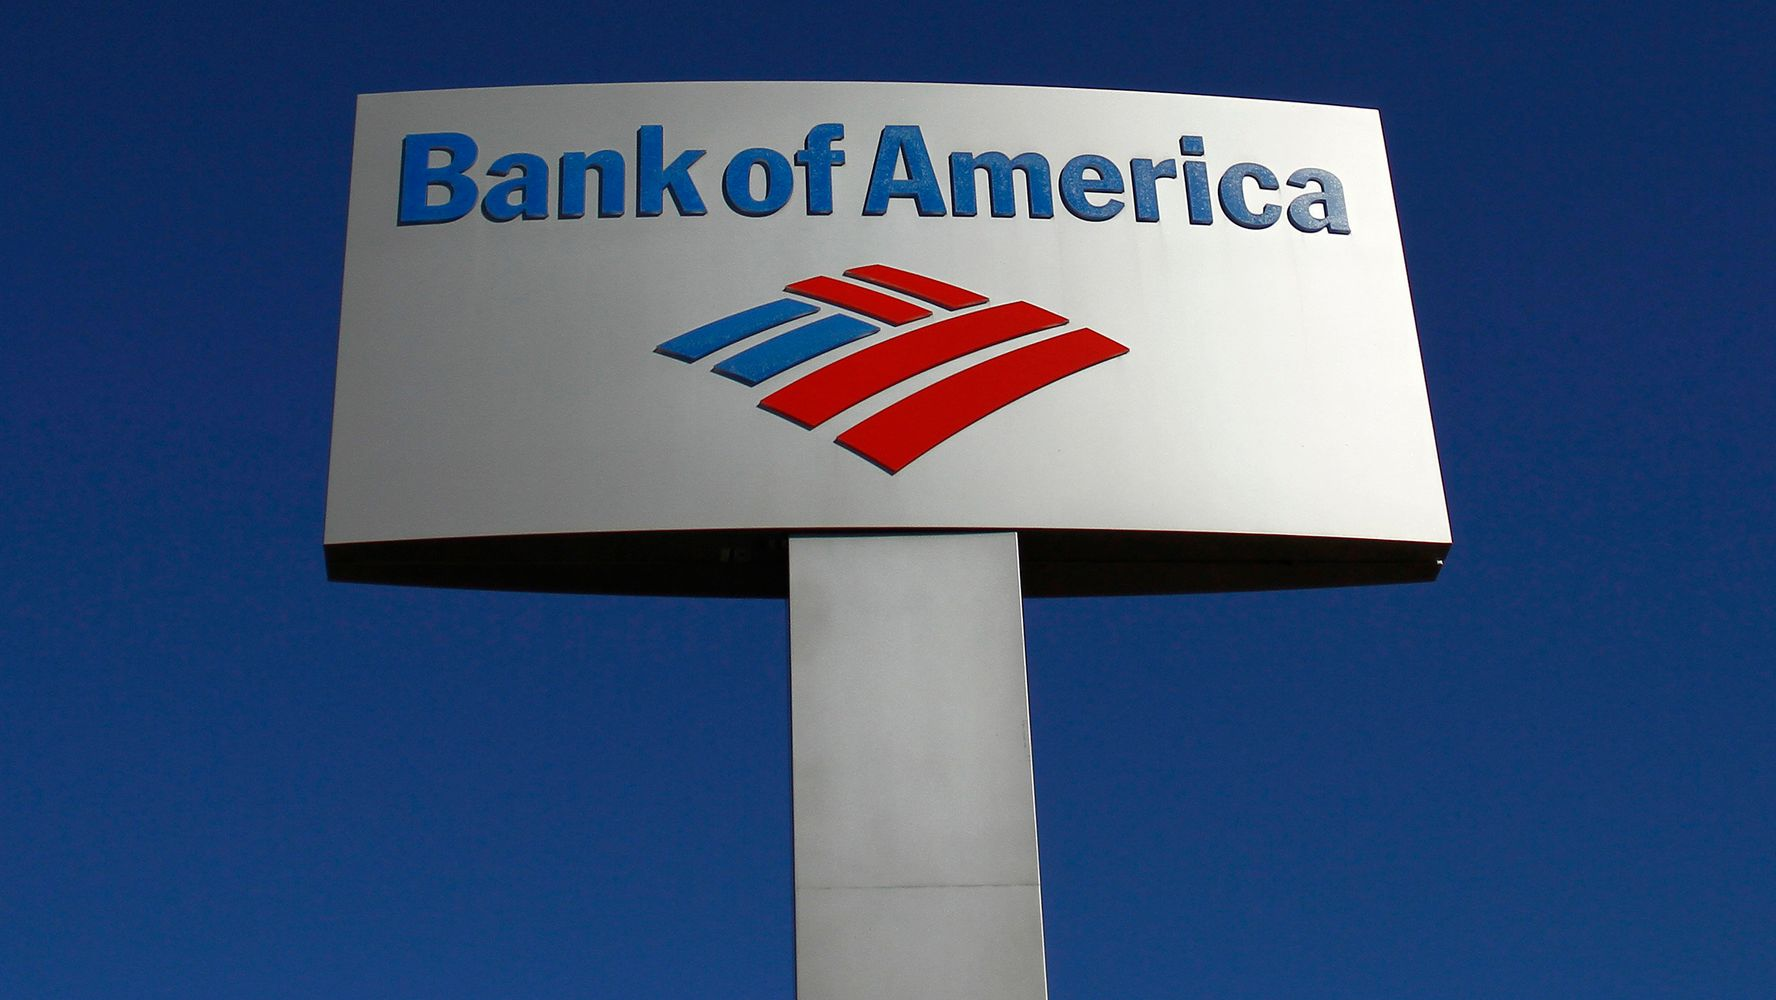 Bank Of America's Poorest Customers To Be Charged For